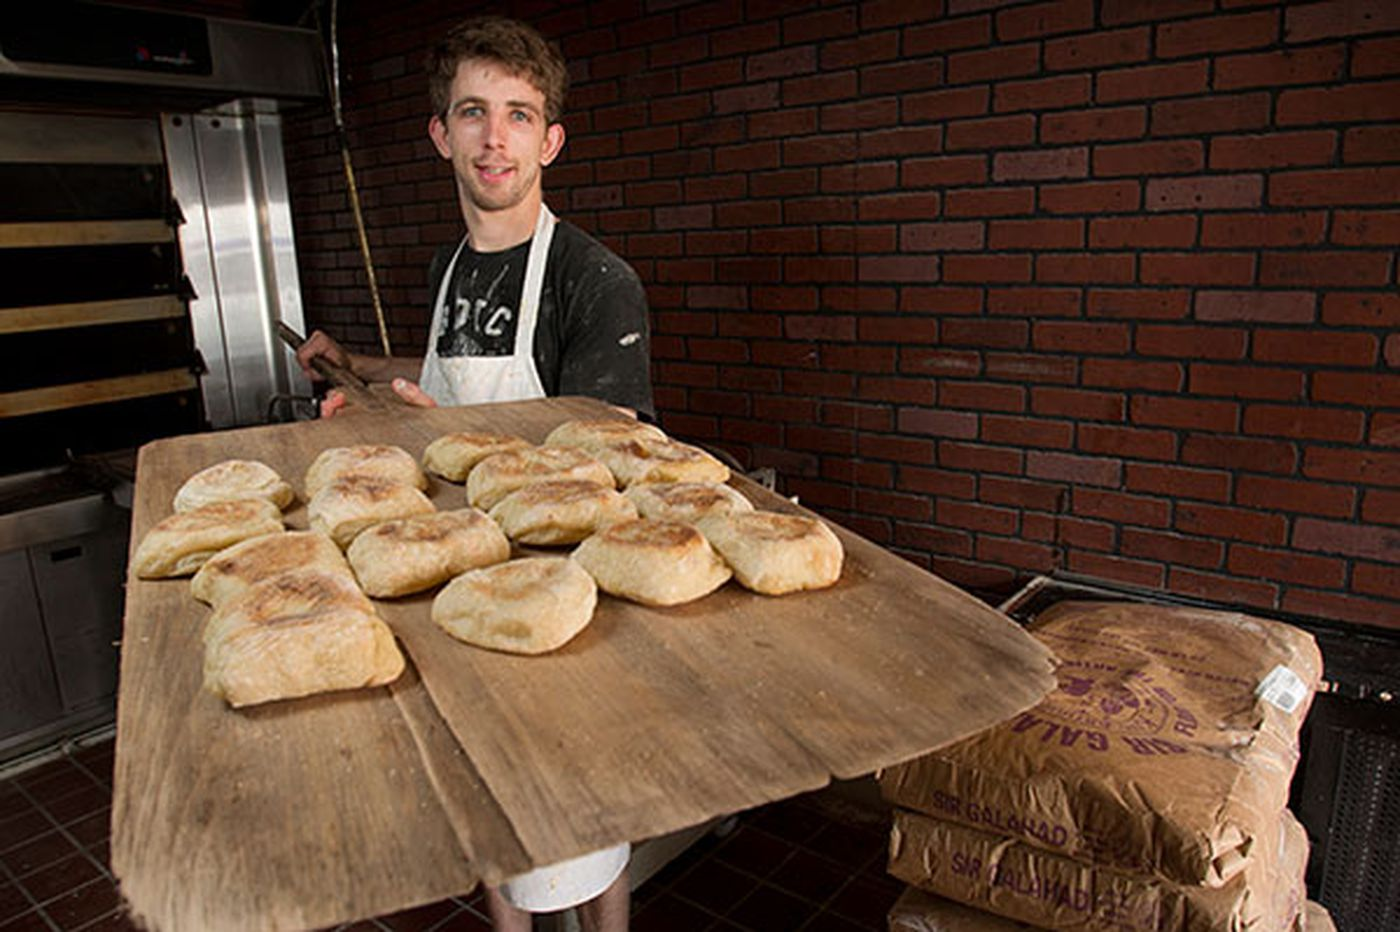 Have you met Philly's muffin man?